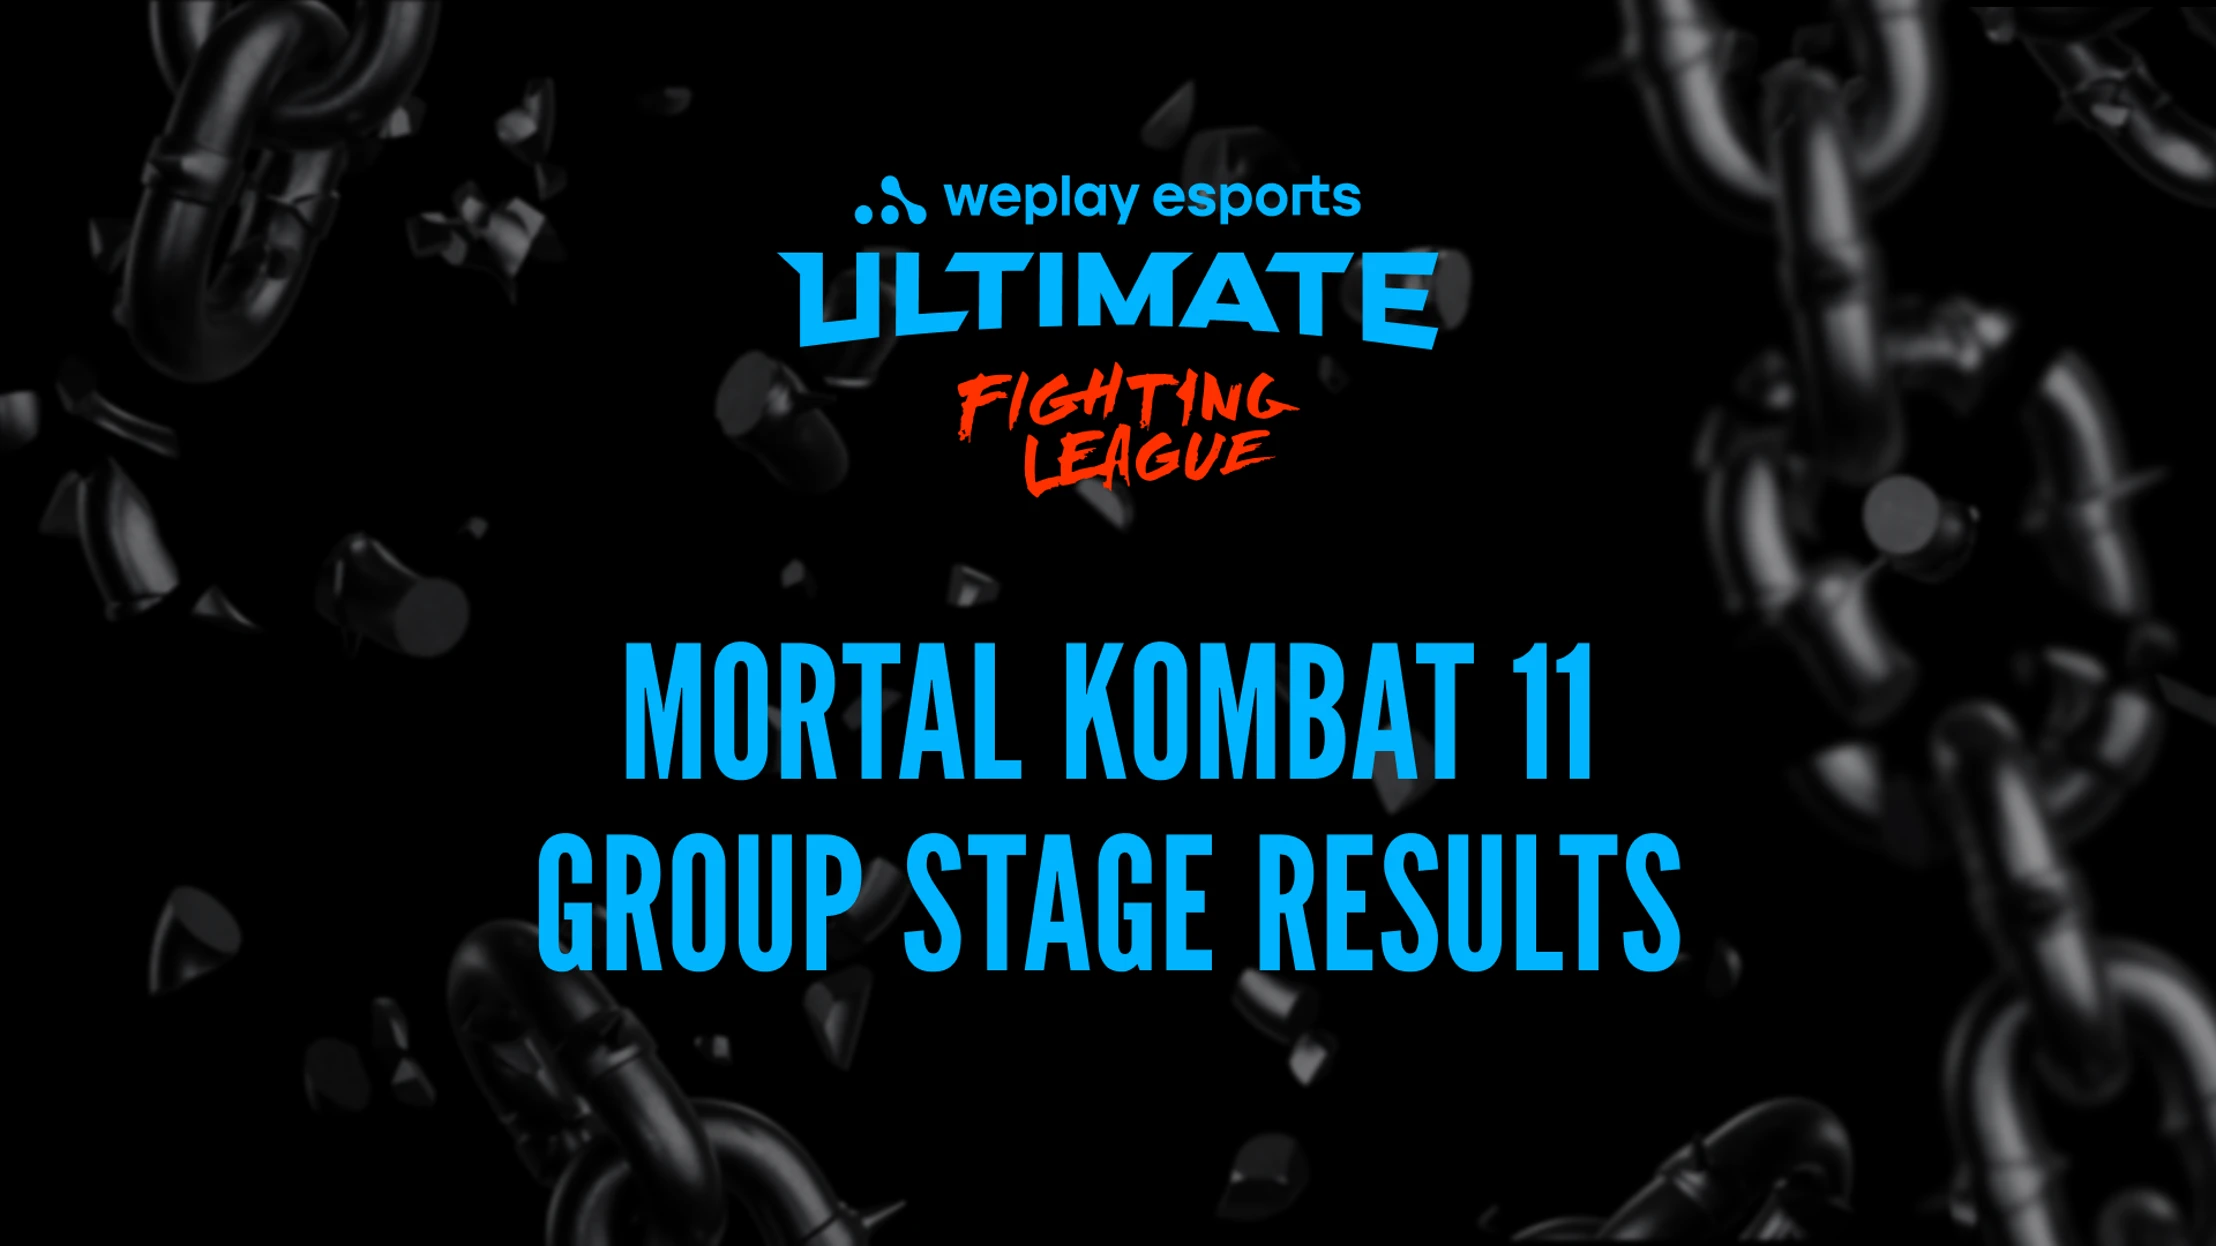 WePlay Ultimate Fighting League Mortal Kombat 11 Group Stage Results